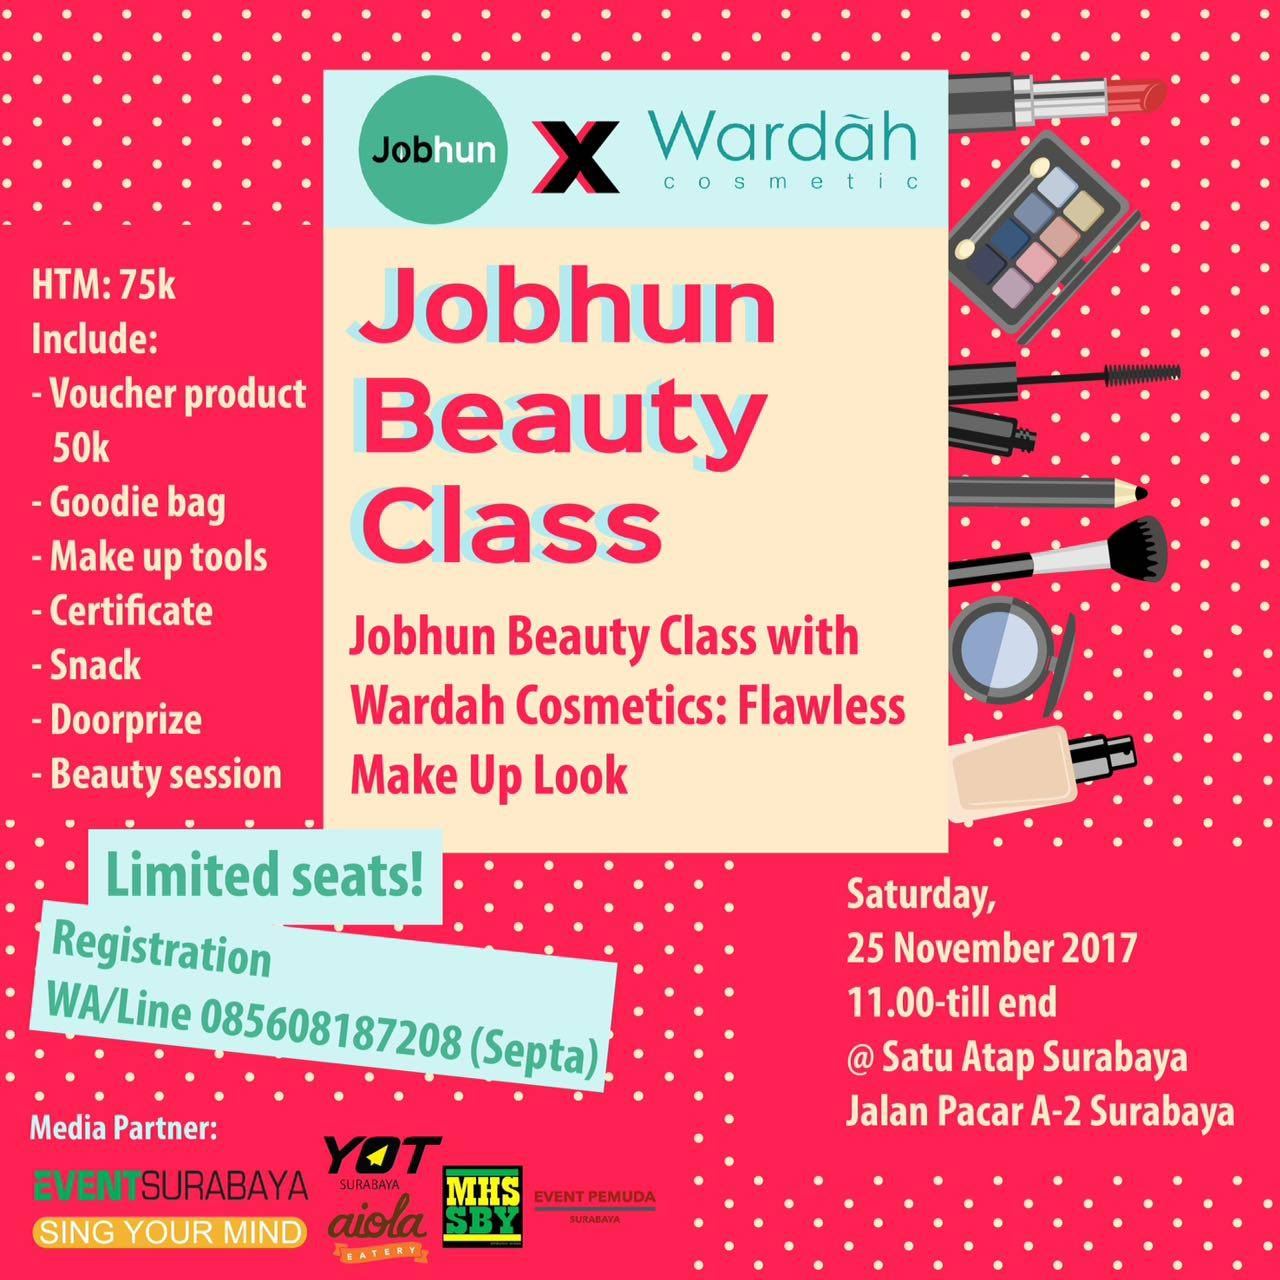 Jobhun Beauty Class: Flawless Make-Up Look